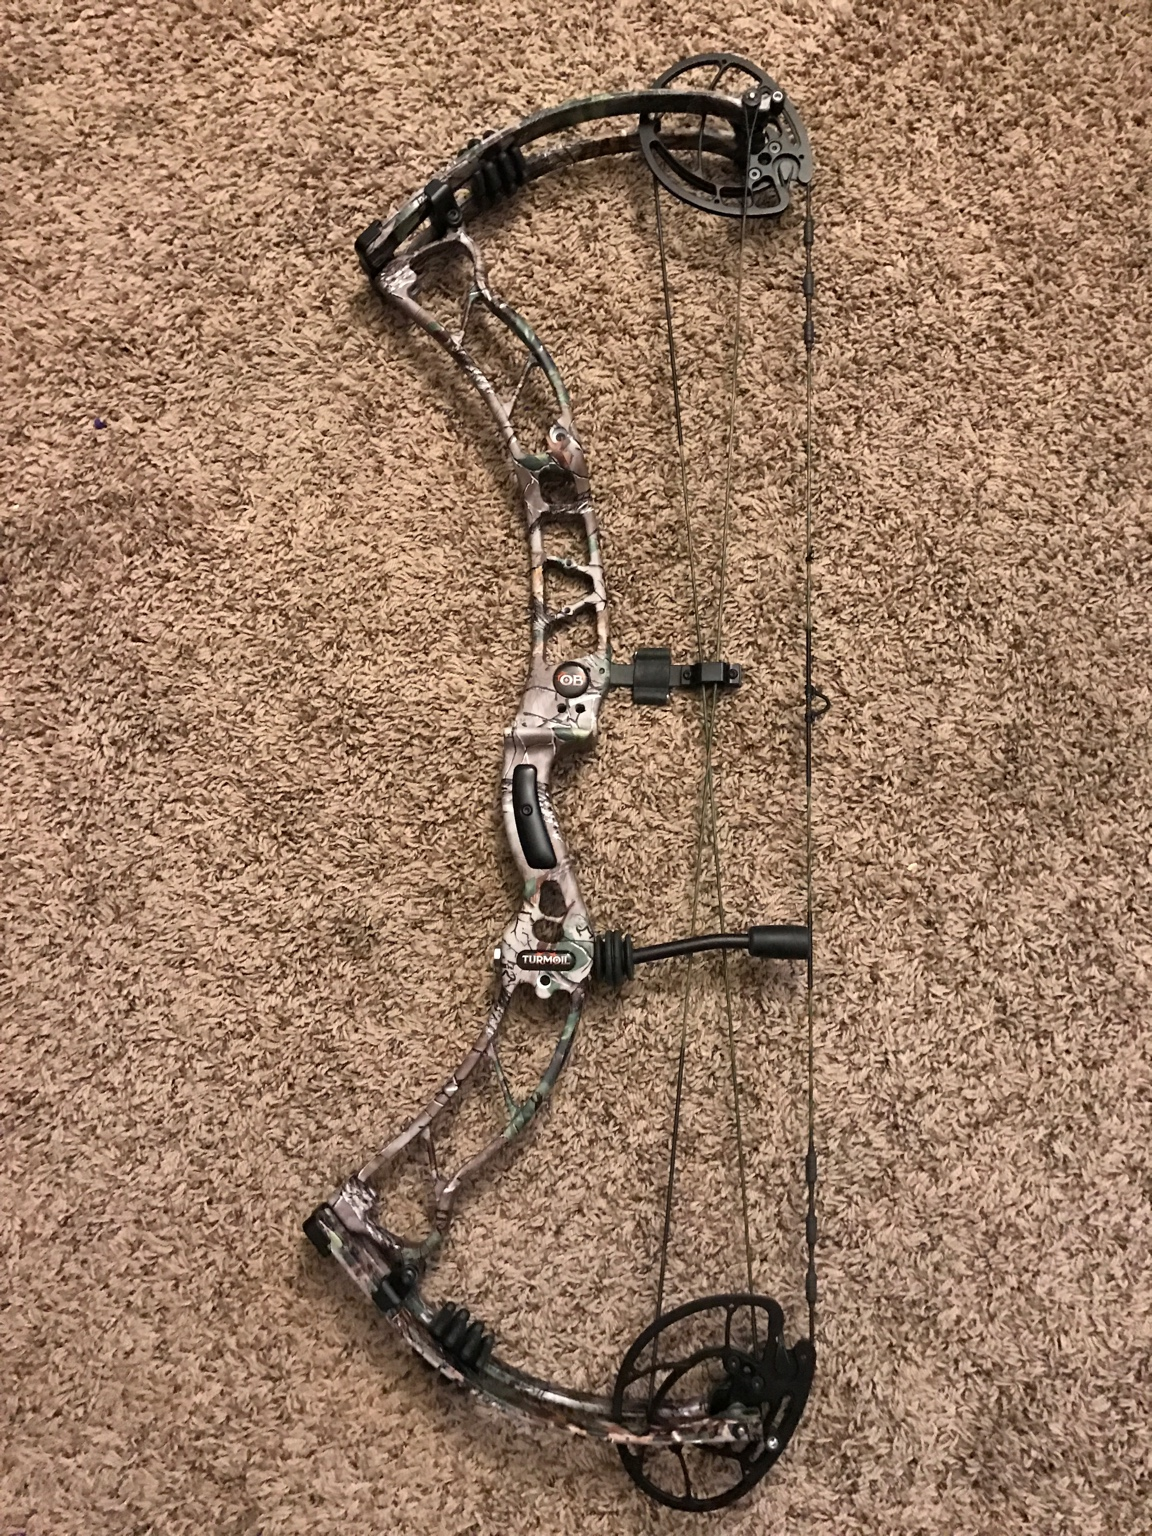 for sale 2017 obsession turmoil in realtree camo will come with 2017 ob window sticker bow is fast and smooth drawing with a good valley 500 00 tyd paypal only please its priced to sell 699 99 retail